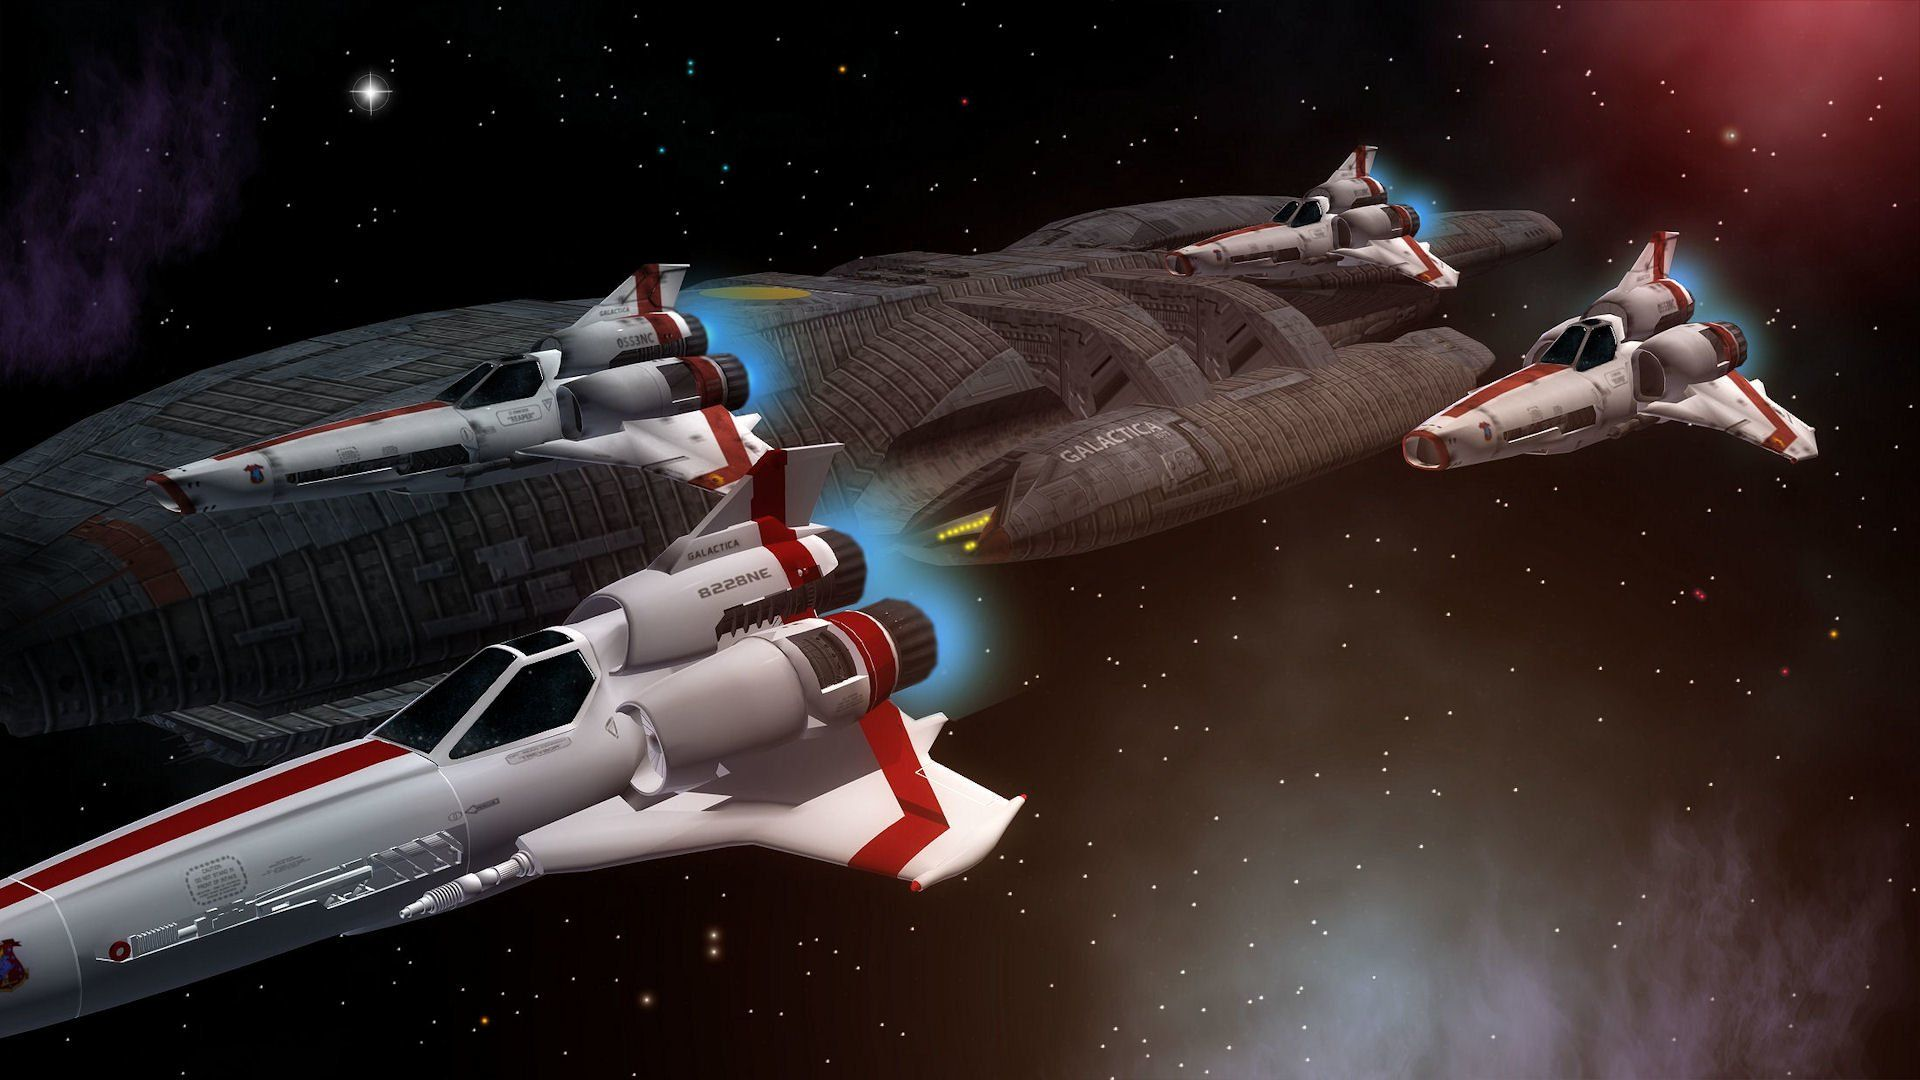 Sci Fi Battlestar Galactica Spaceship Space Wallpaper Battlestar